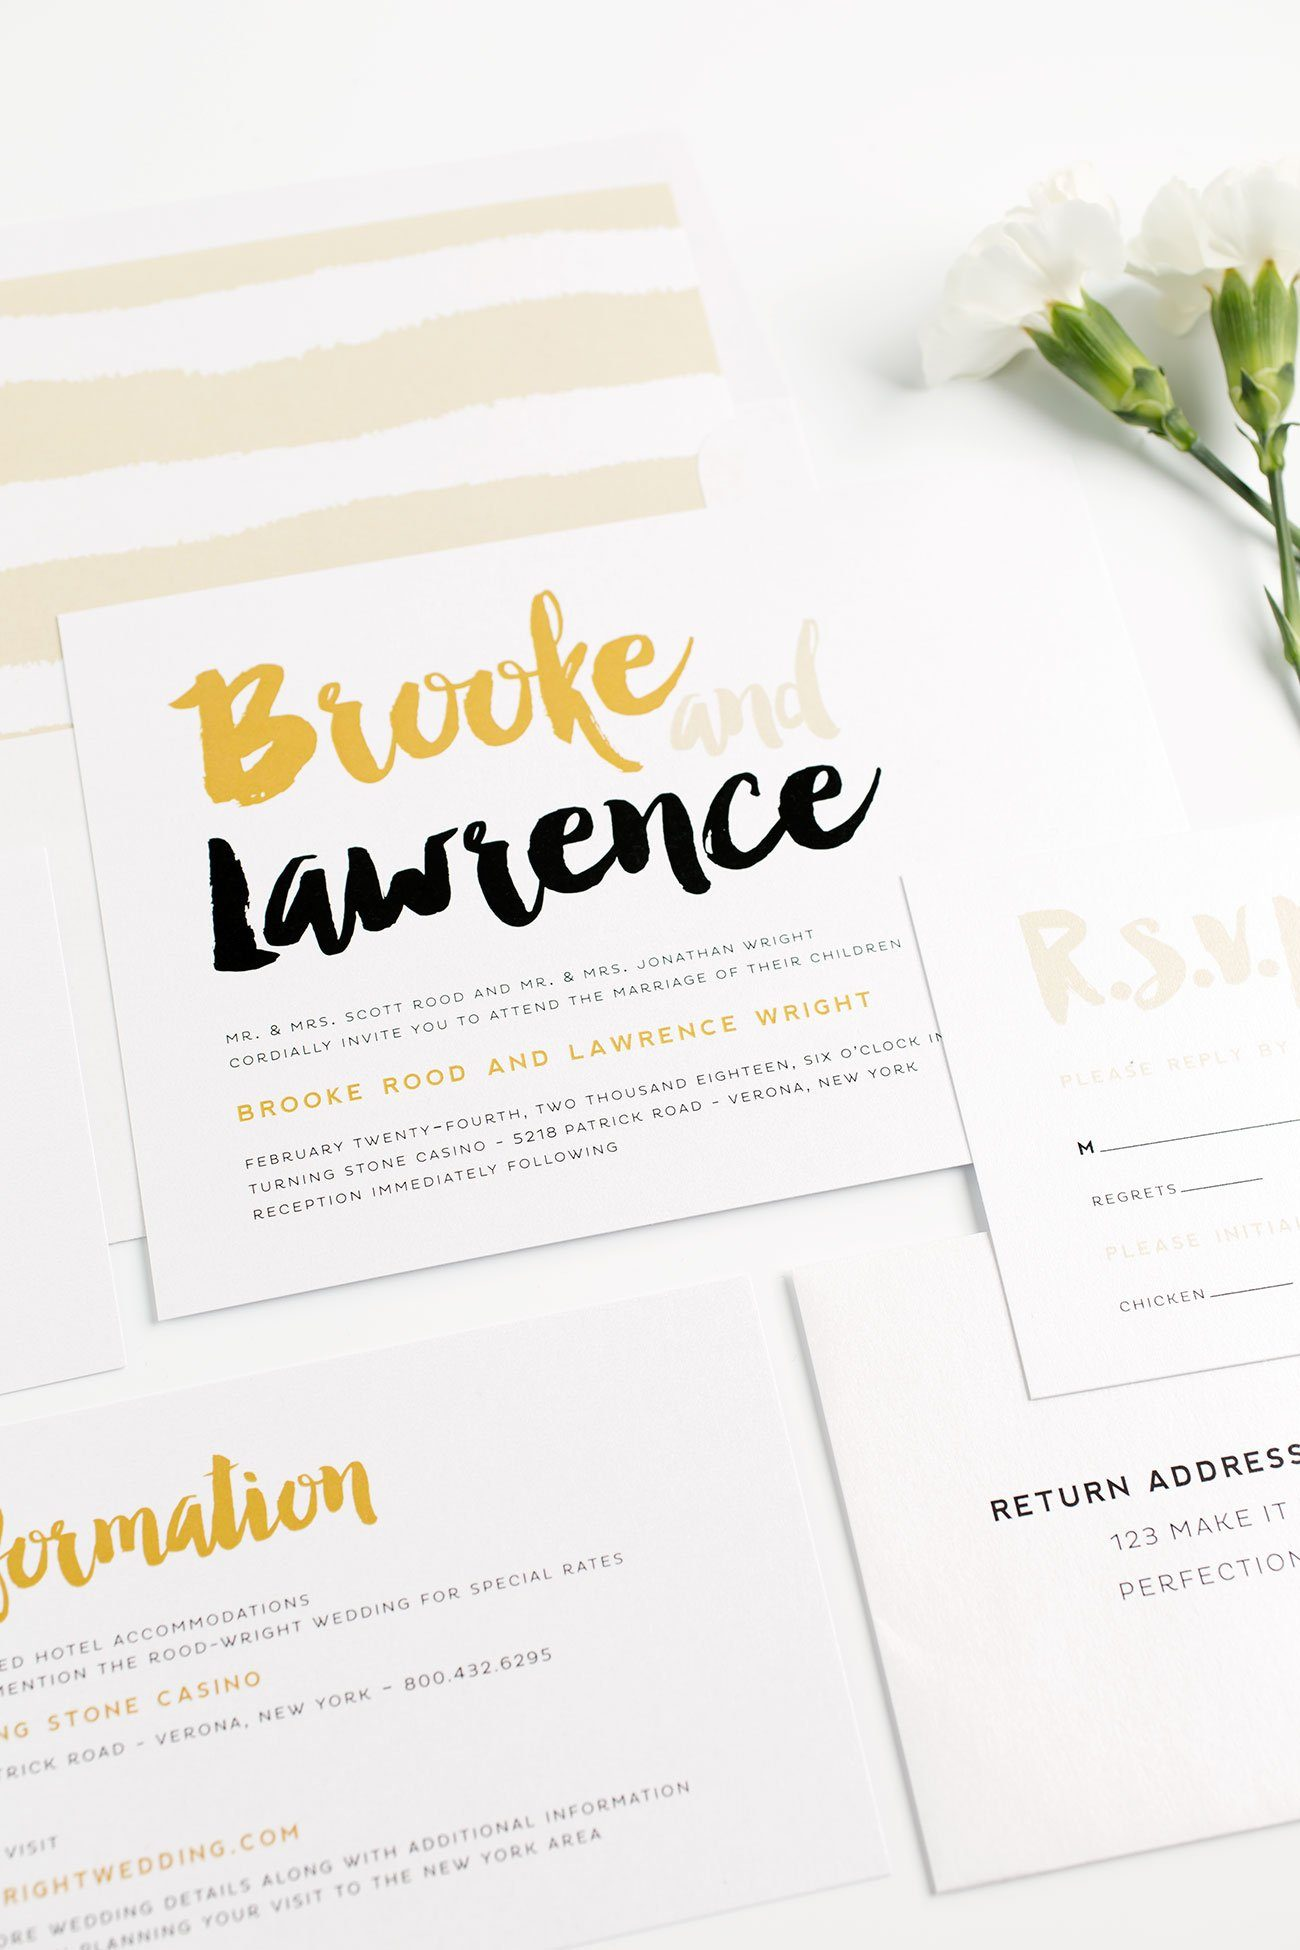 Black and Gold Wedding Invitations with a Striped Envelope Liner